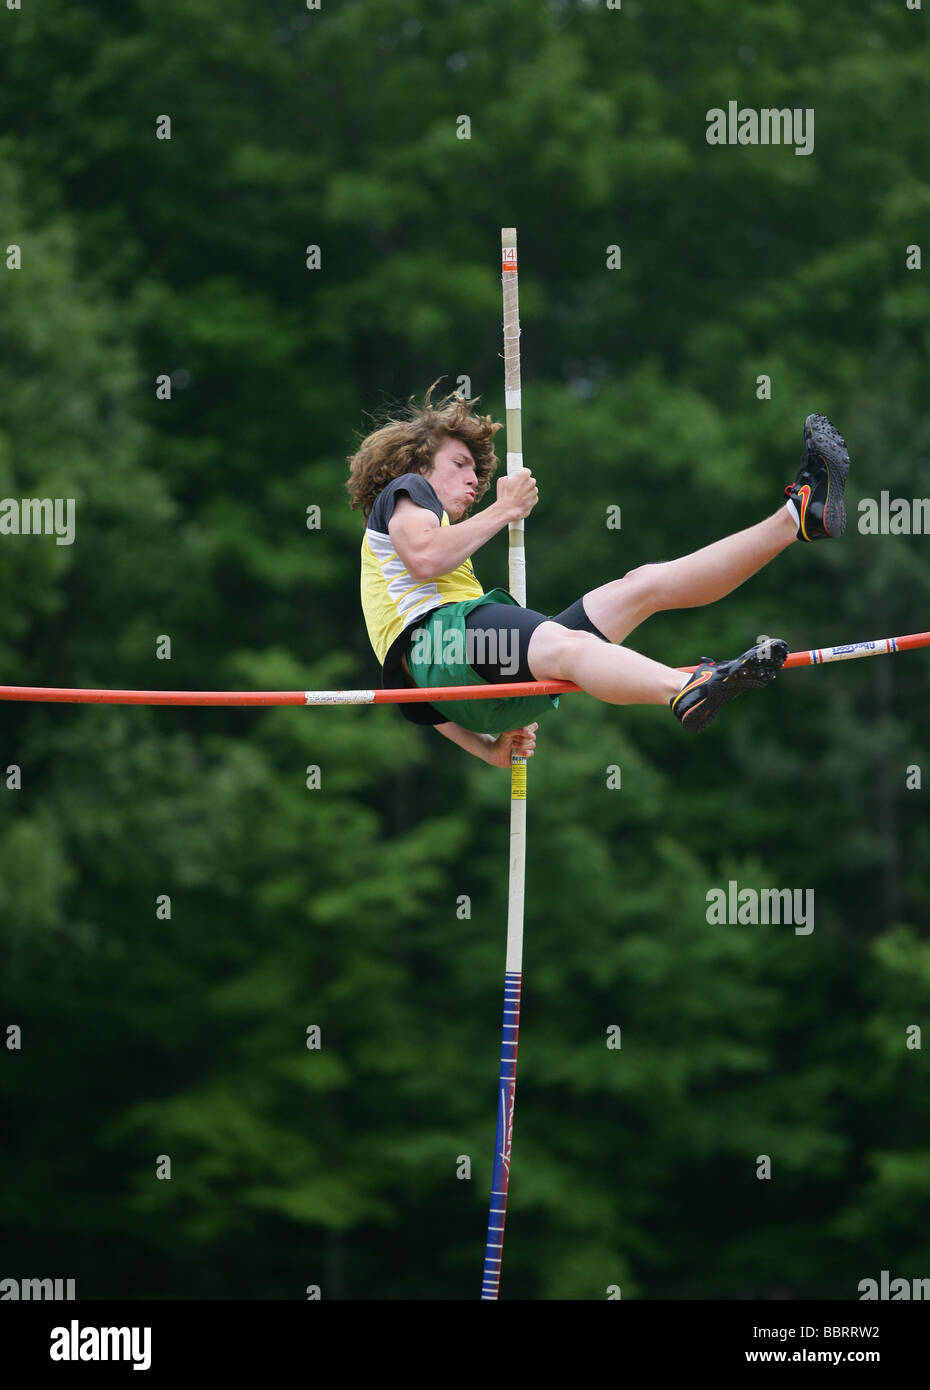 A high school athlete misses clearing the bar during the High School State Championship Track and Field meet in - Stock Image